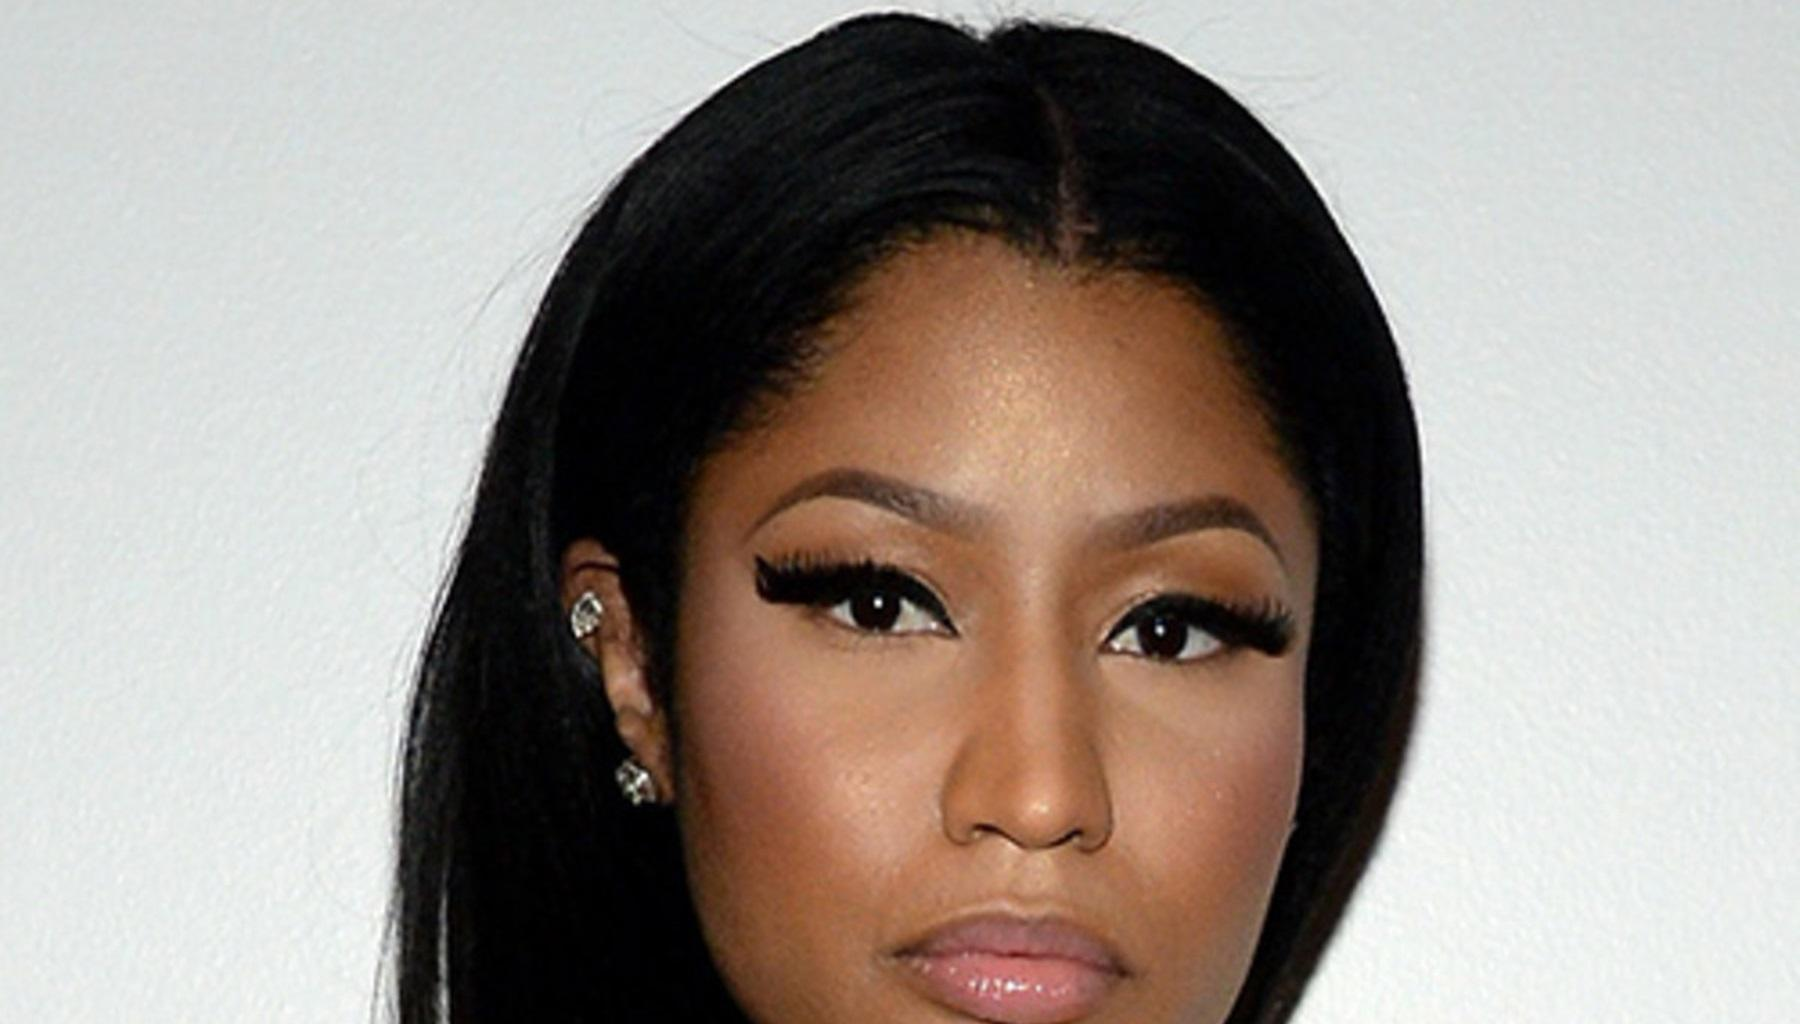 Nicki Minaj Destroys This 'Bitter Black Woman' Who Dared To Disrespect Her In This Viral Video And Tami Roman Has Her Back